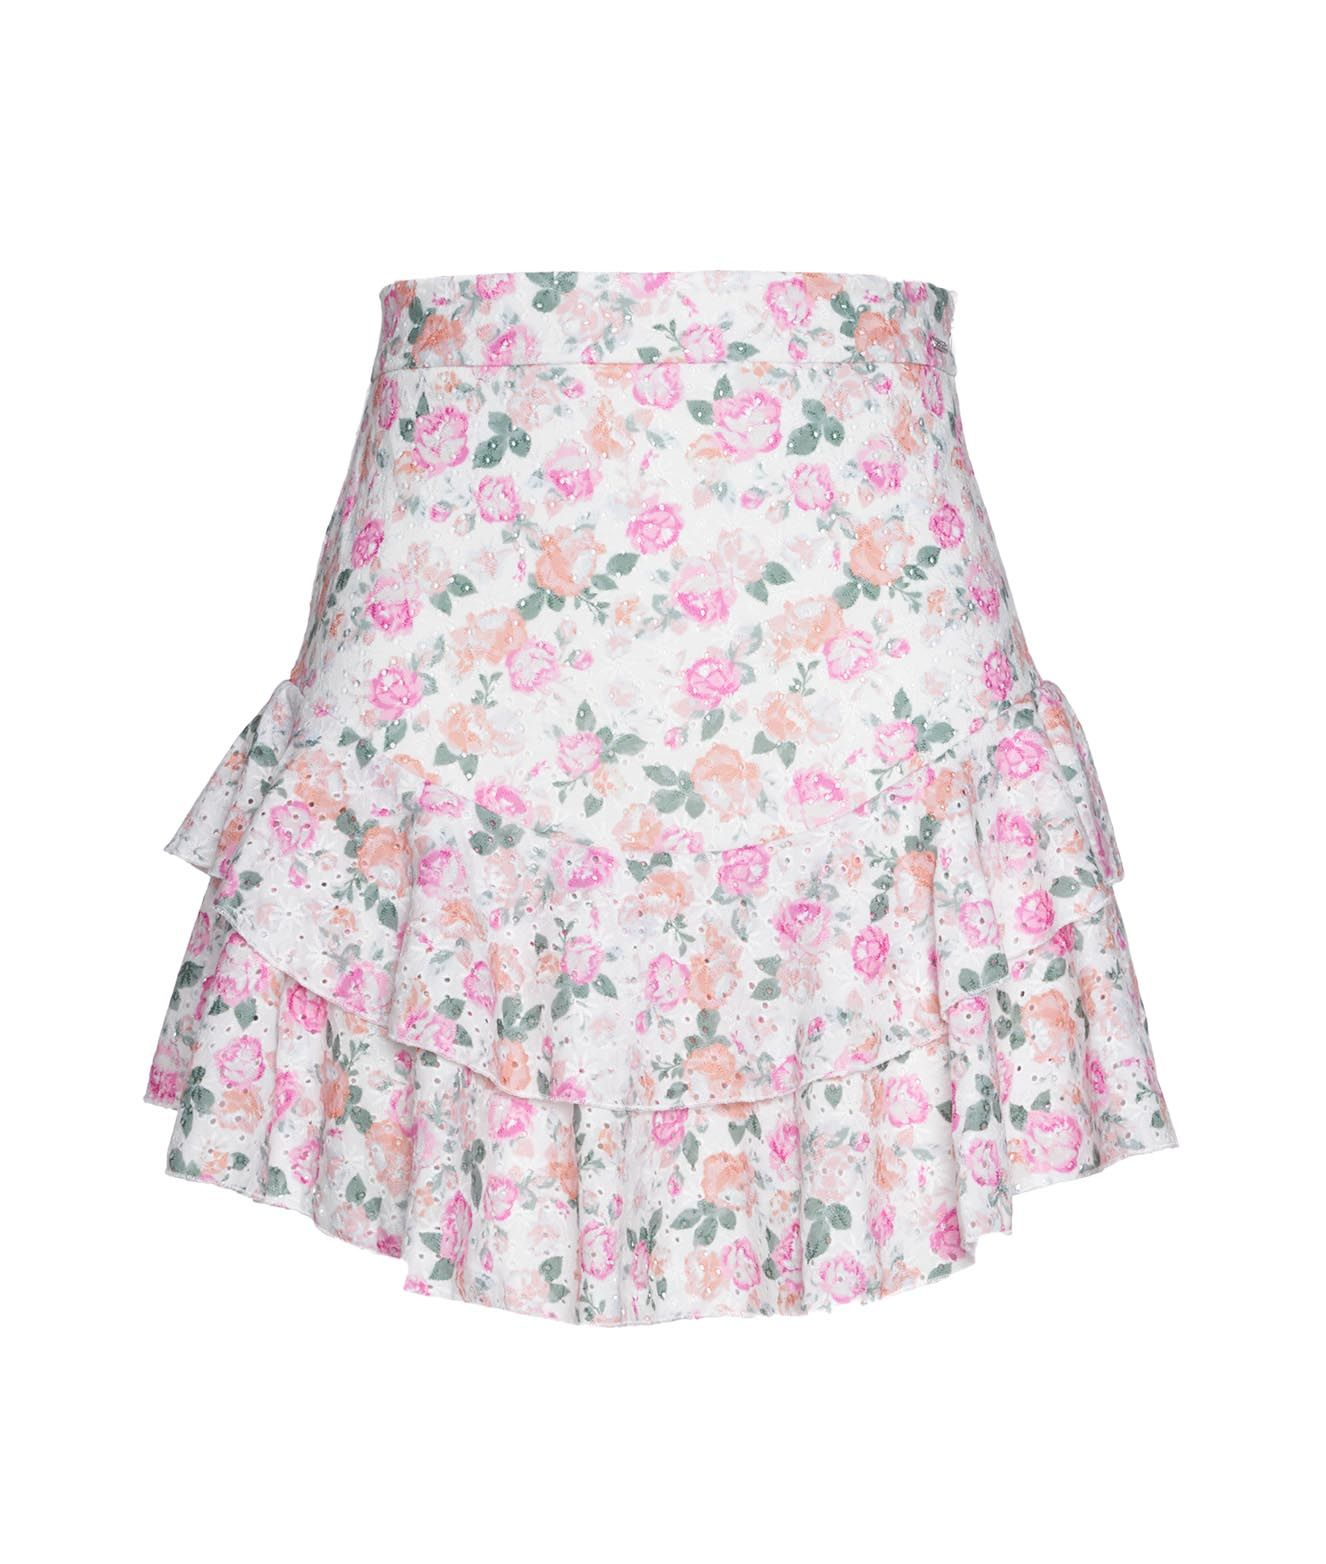 Guess Skirts GUESS WOMEN'S W1GD0FKALQ011P06X MULTICOLOR OTHER MATERIALS SKIRT